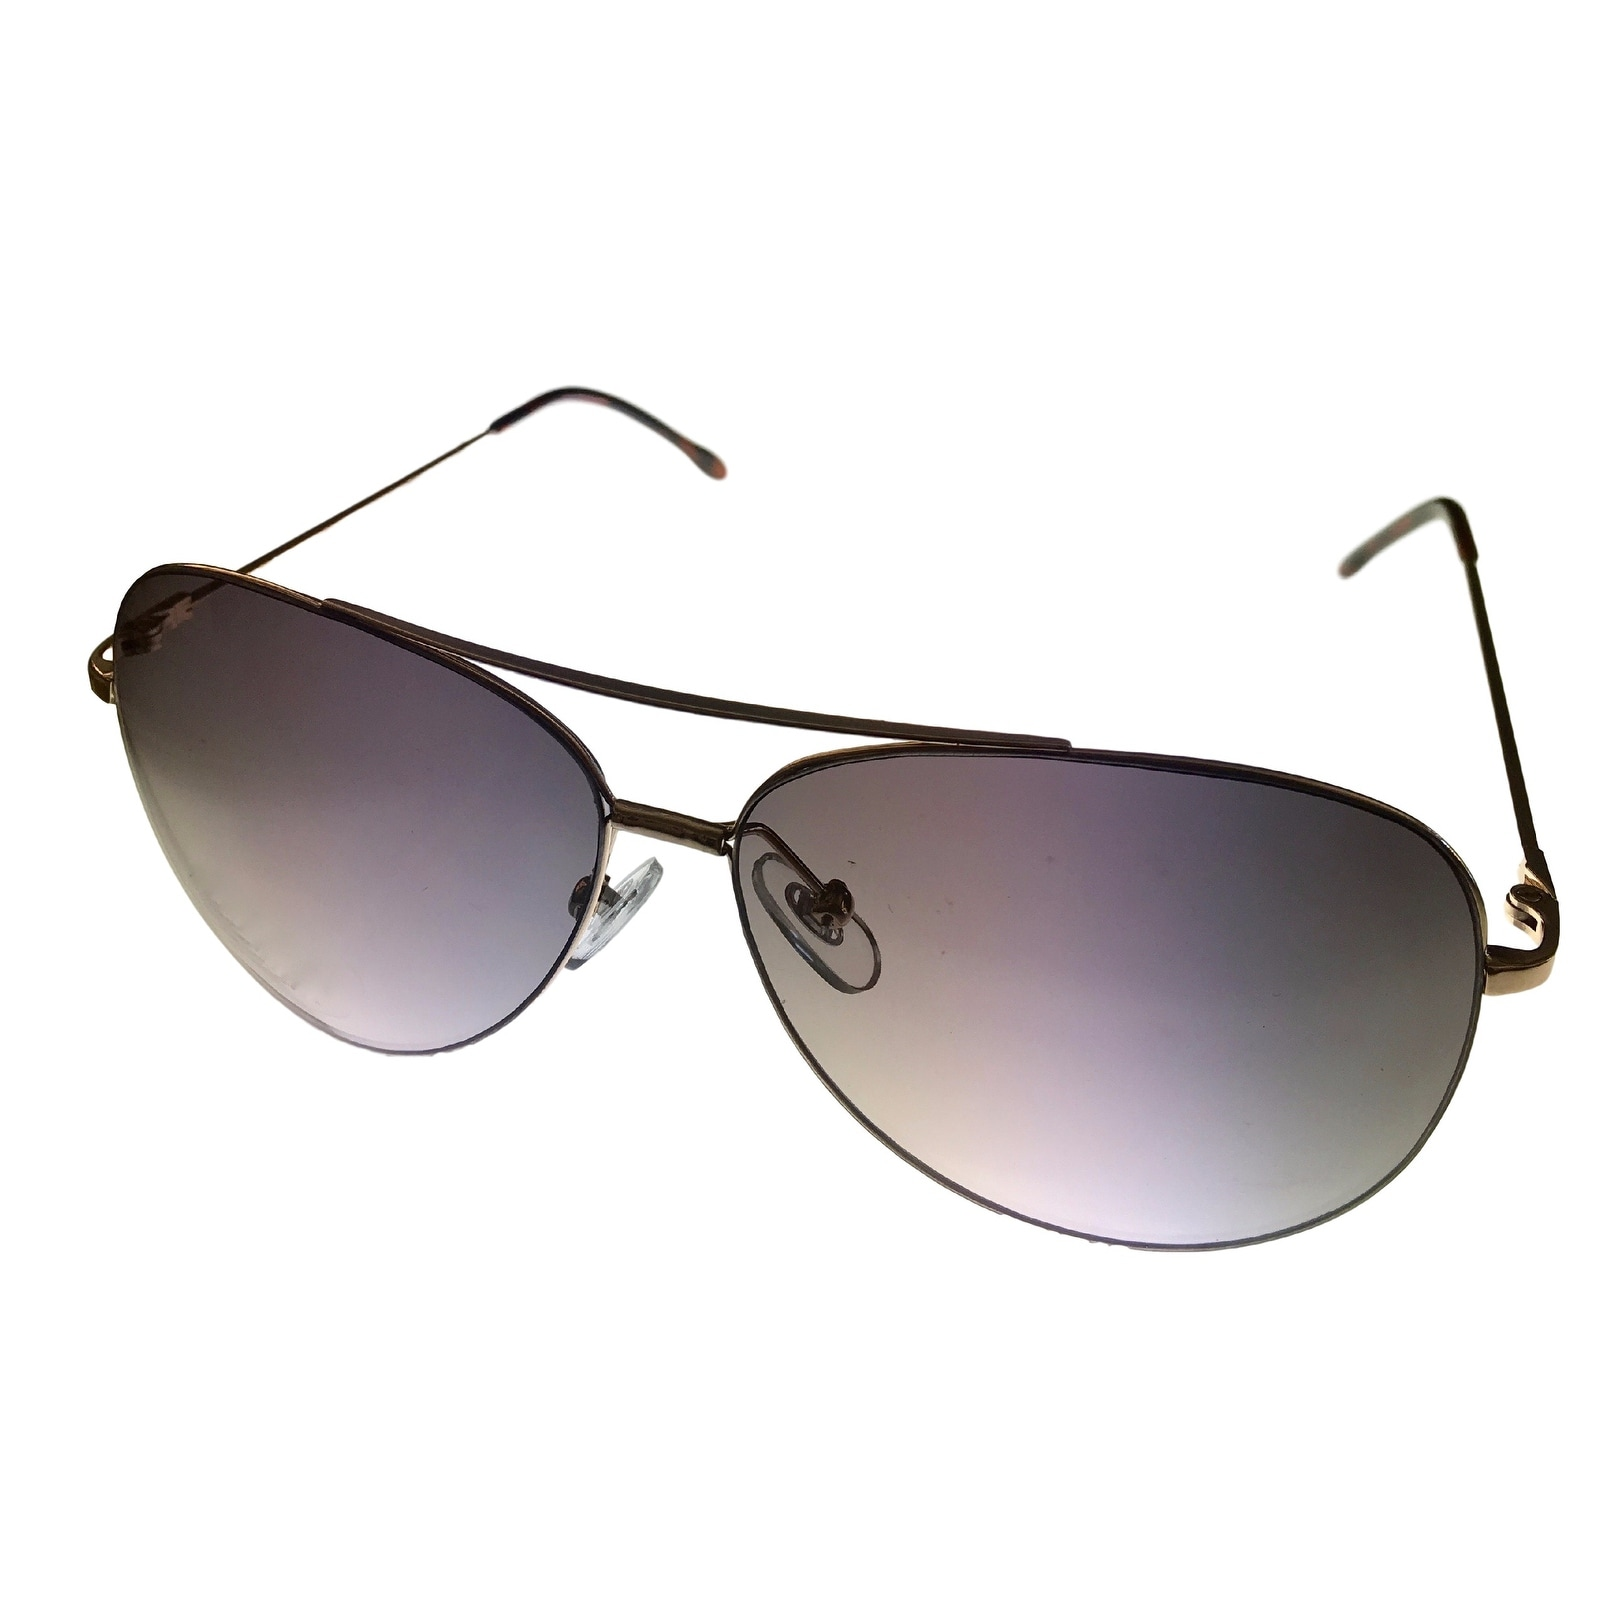 Perry Ellis Mens Sunglass PE66 3 Gold Metal Aviator with Brown Gradient Lens - Medium - Thumbnail 0